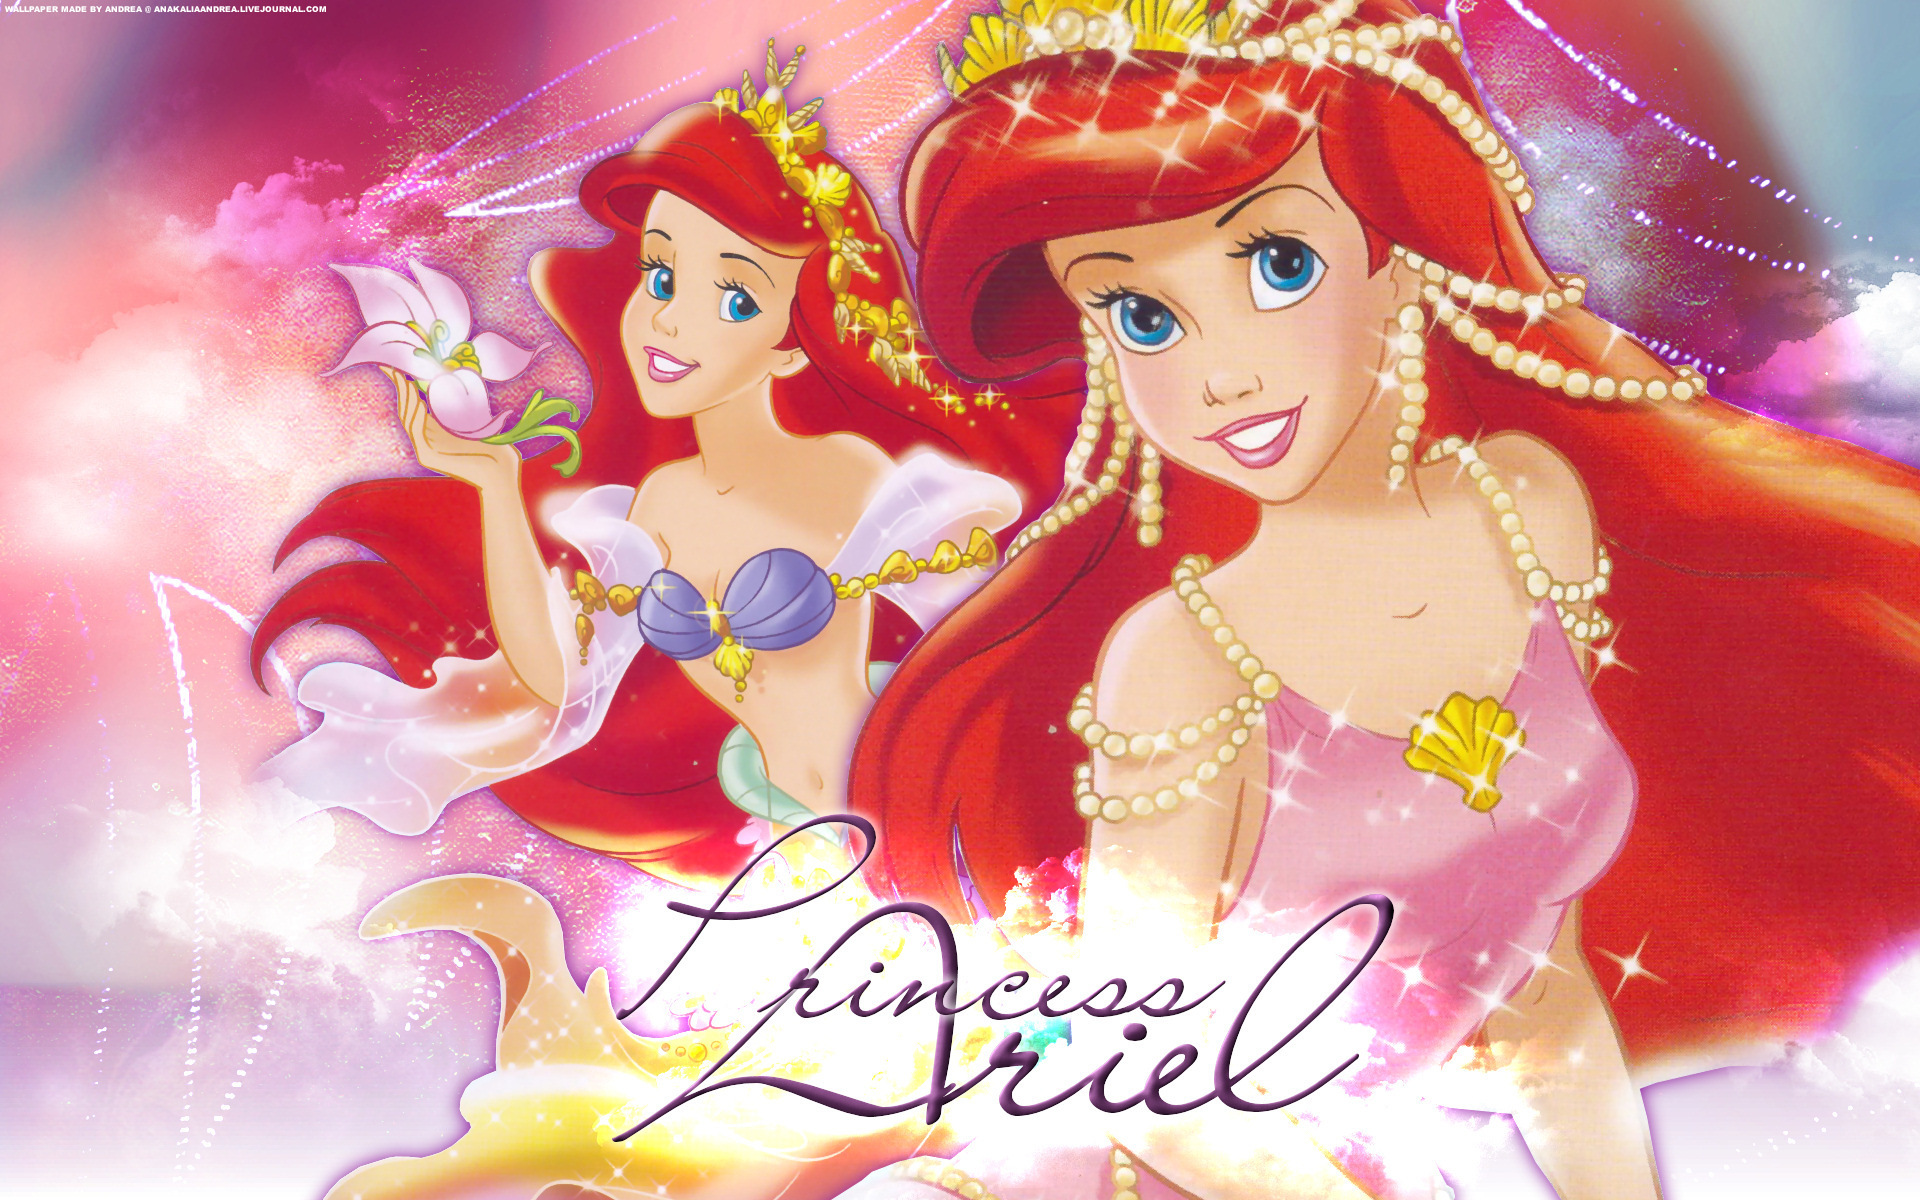 - Princess-Ariel-the-little-mermaid-4917924-1920-1200